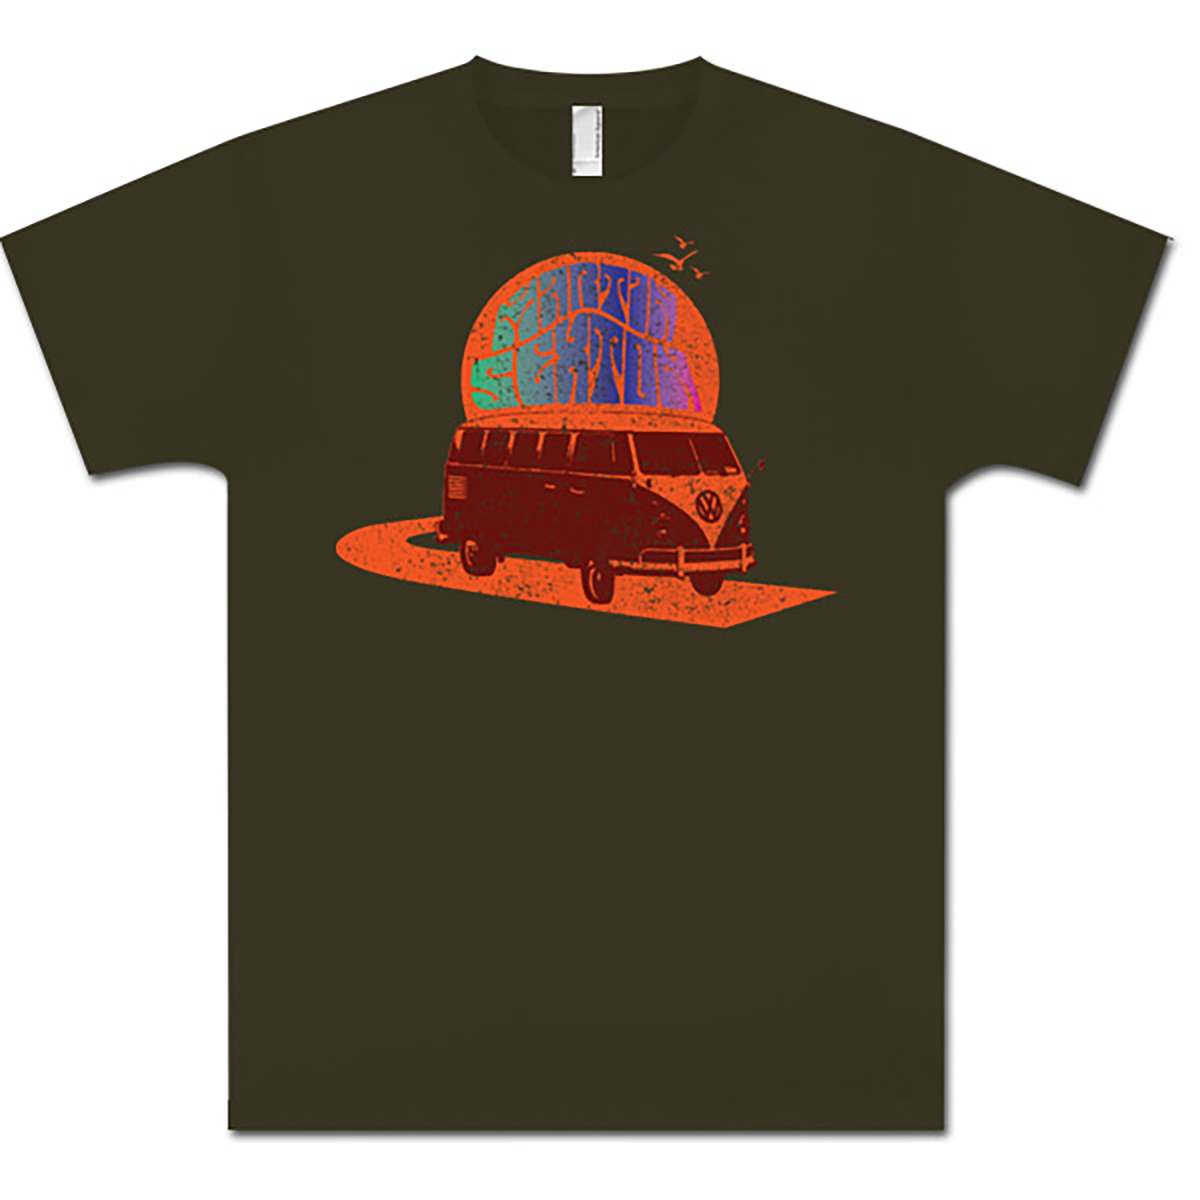 Martin Sexton Magical VW Bus T-Shirt